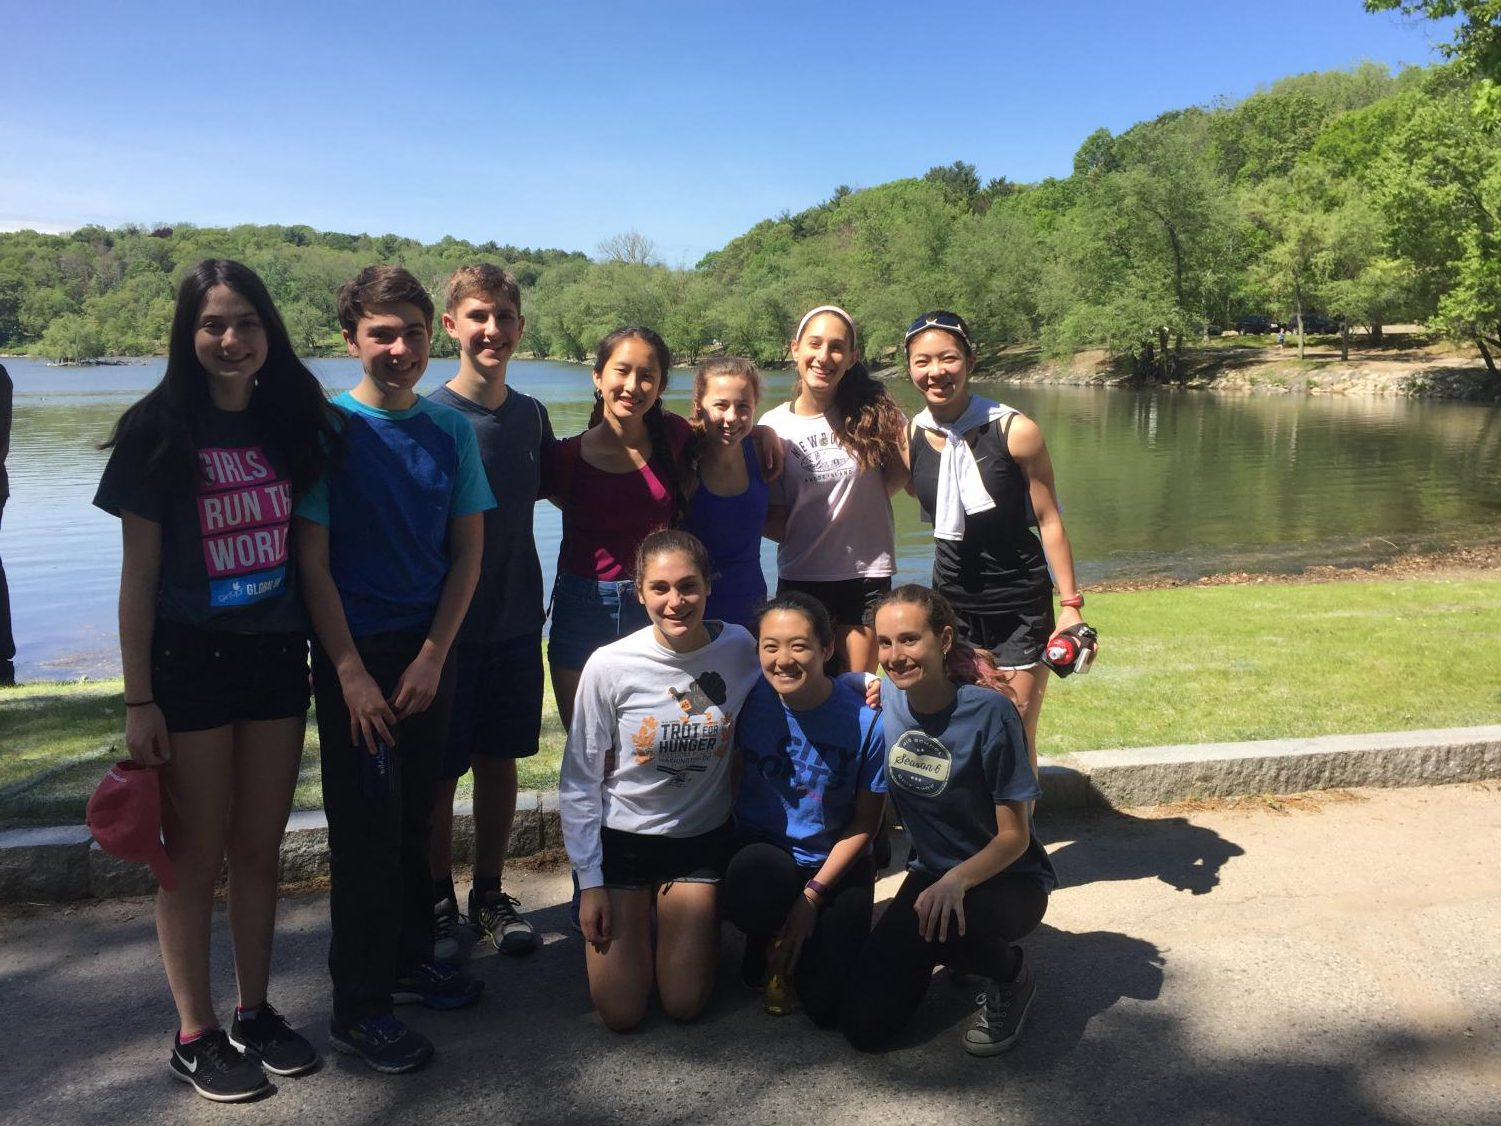 Last year, the GirlUp club hosted an event at Jamaica Pond to raise money for the global GirlUp campaign.